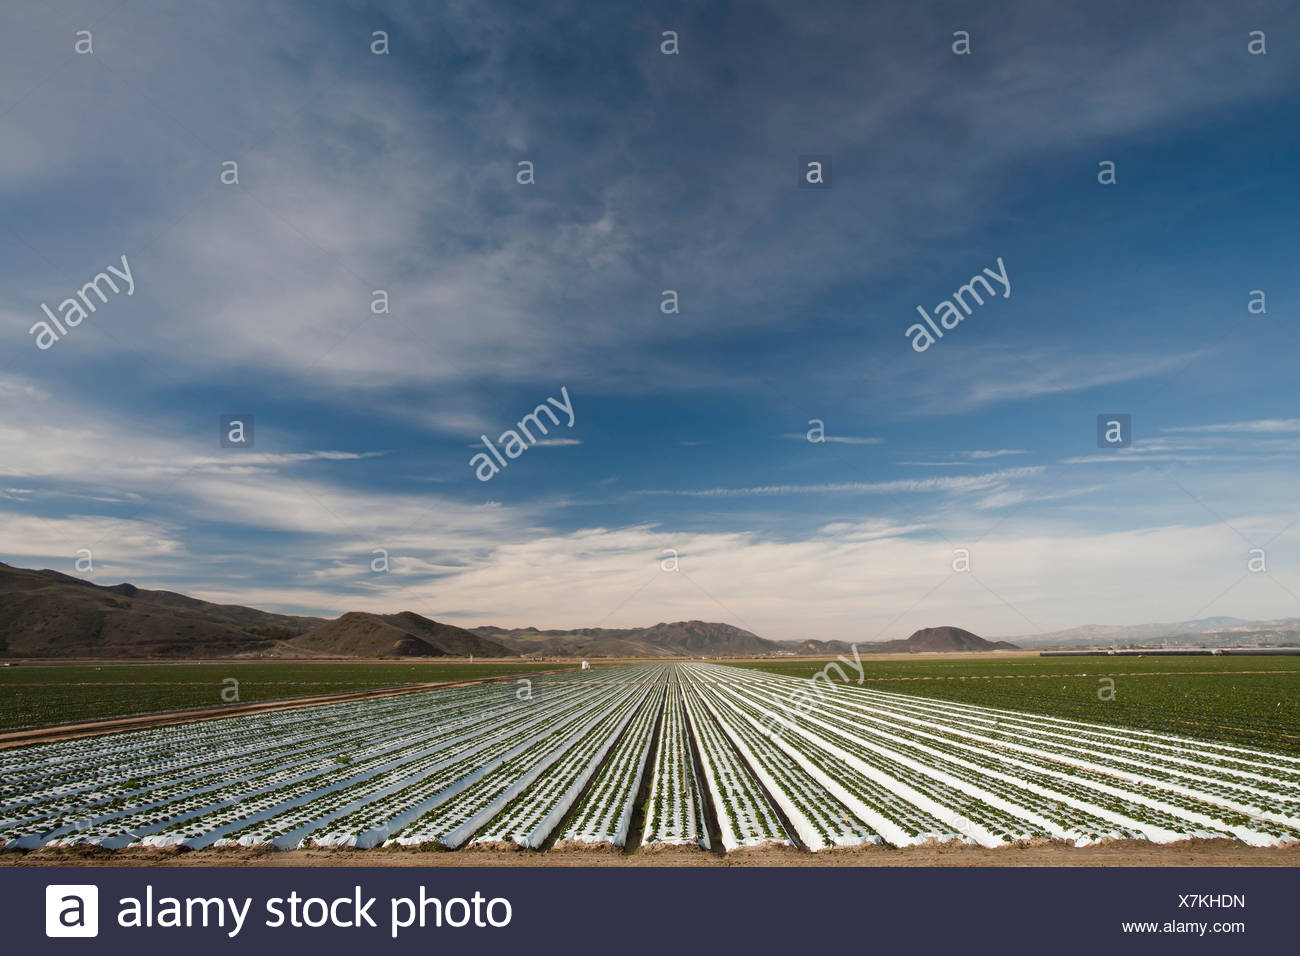 Rows of crops underneath plastic - Stock Image